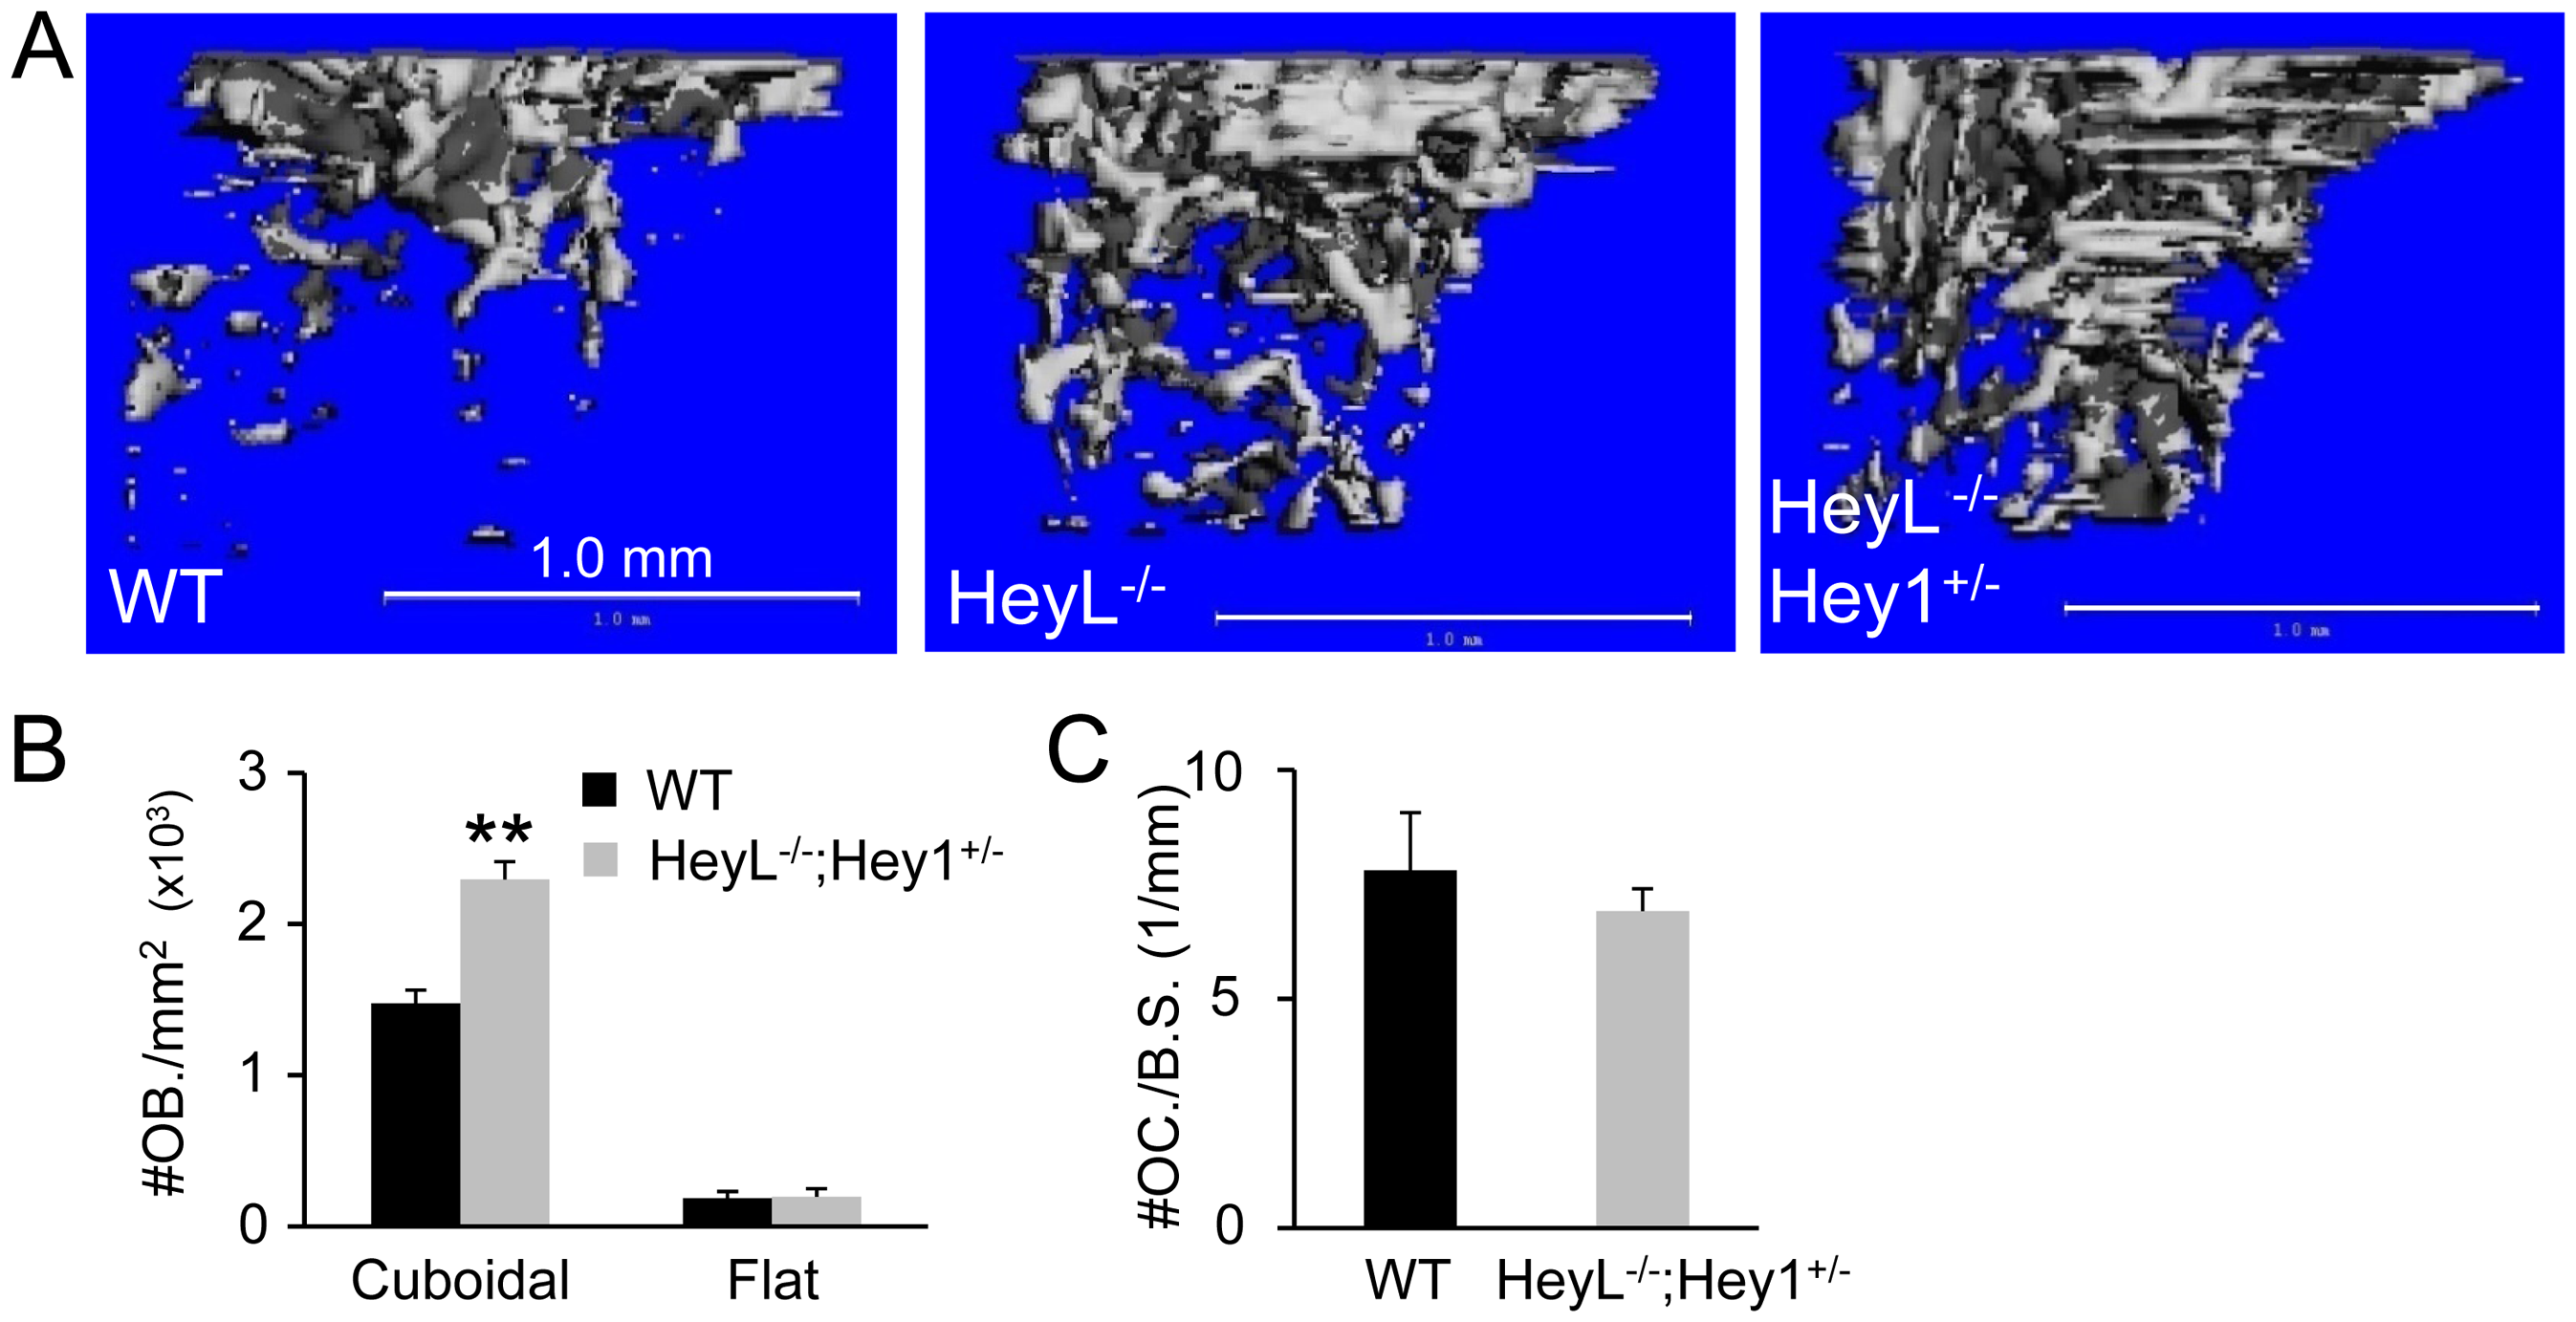 Bone phenotypes of Hey1 and HeyL mutant mice at 8 weeks of age.